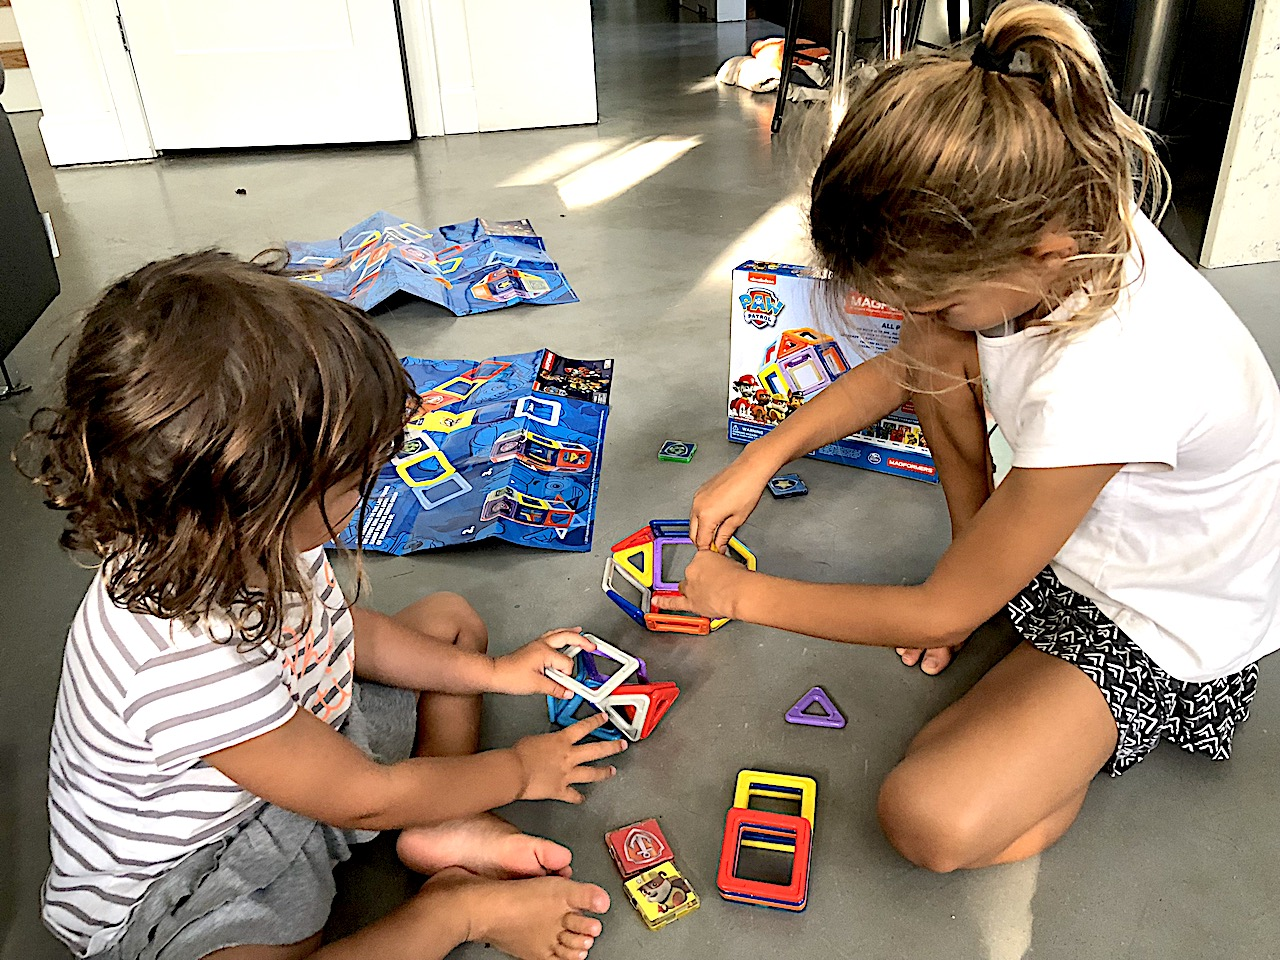 Paw Patrol Magformers - Best STEM toy for children of all ages #Magformers #STEM #STEMToys #BestToy #AwardWinning